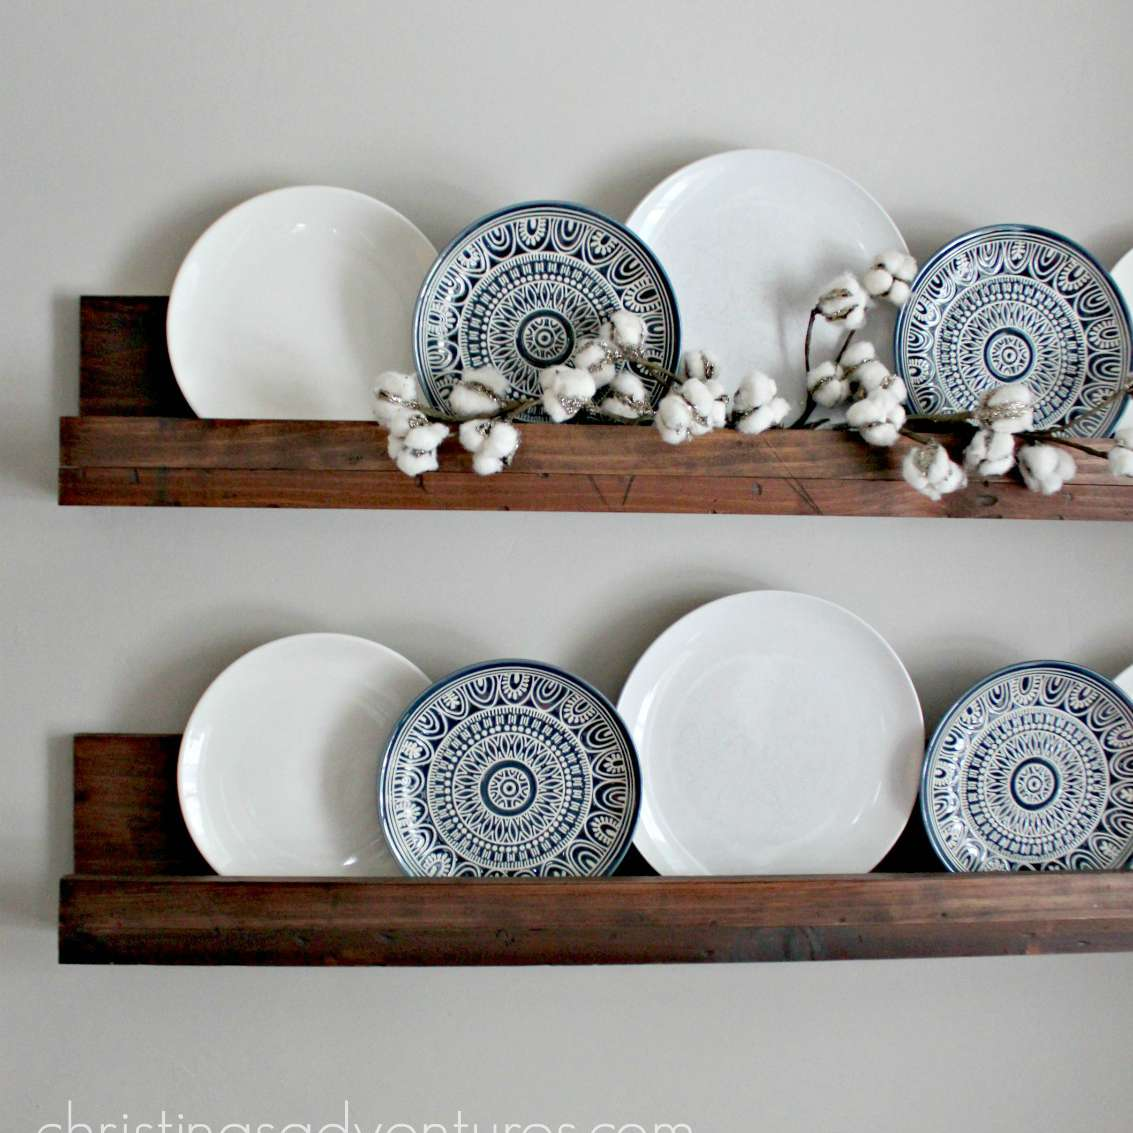 Wooden ledge display shelf with plates on top